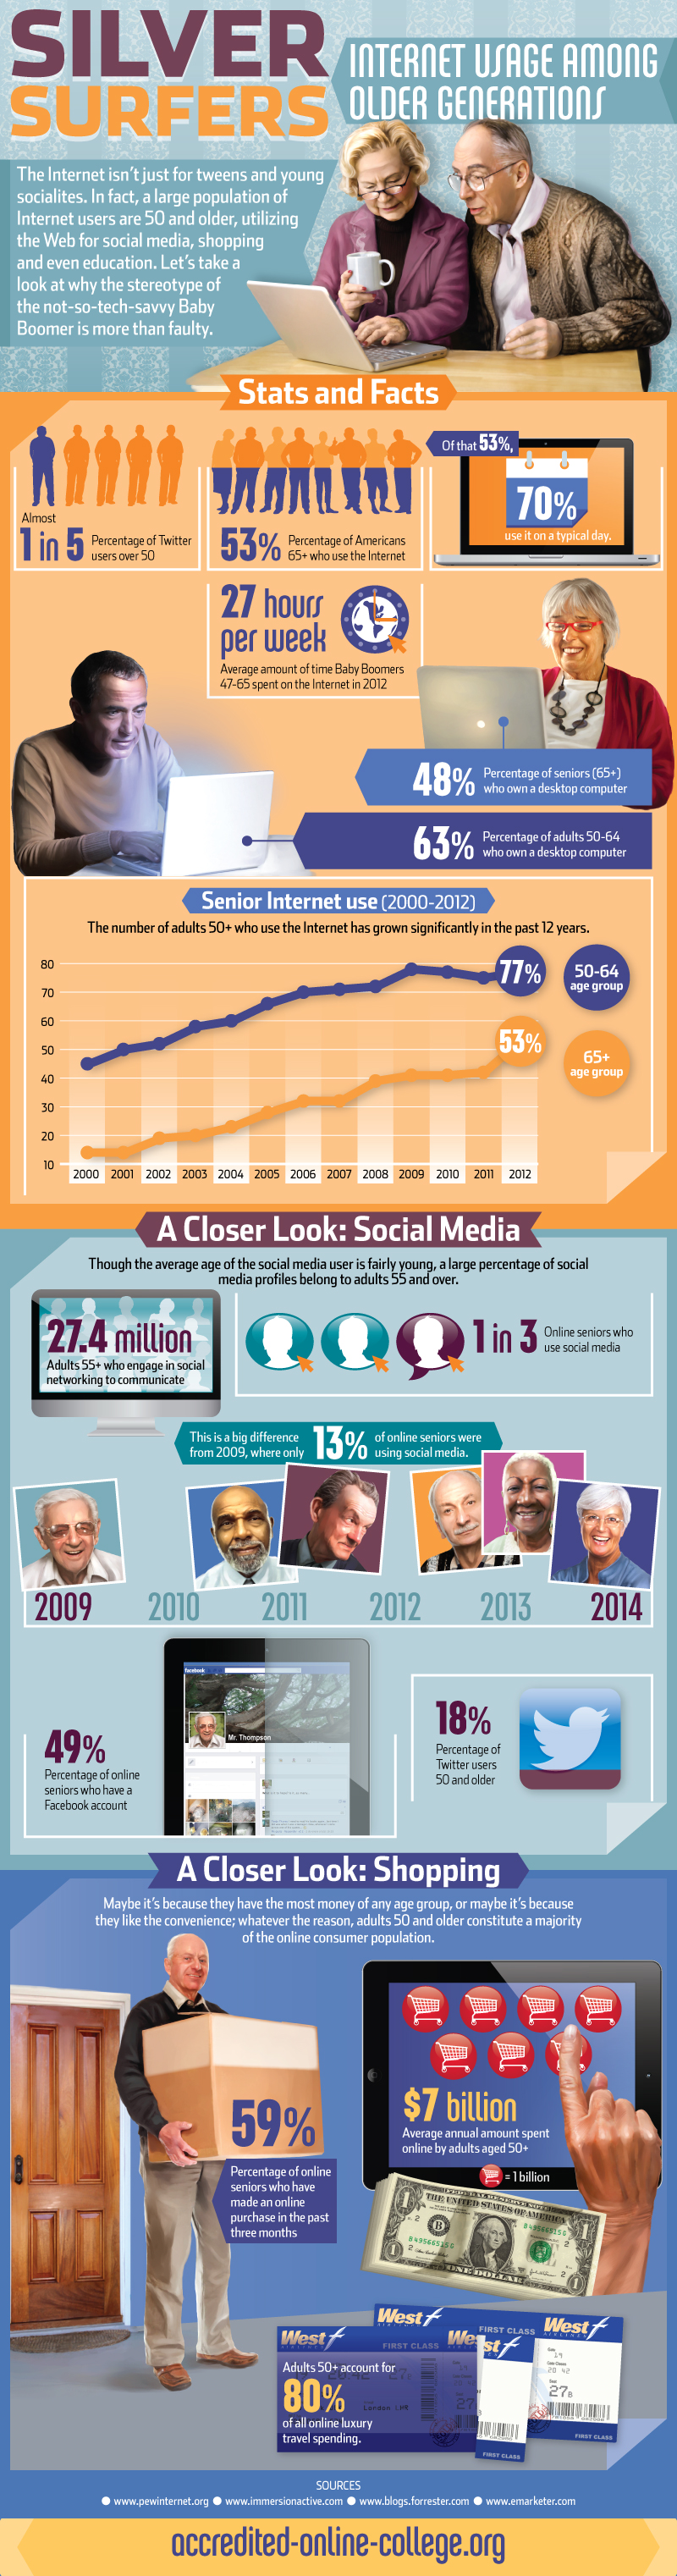 Internet Usage among Older Generations